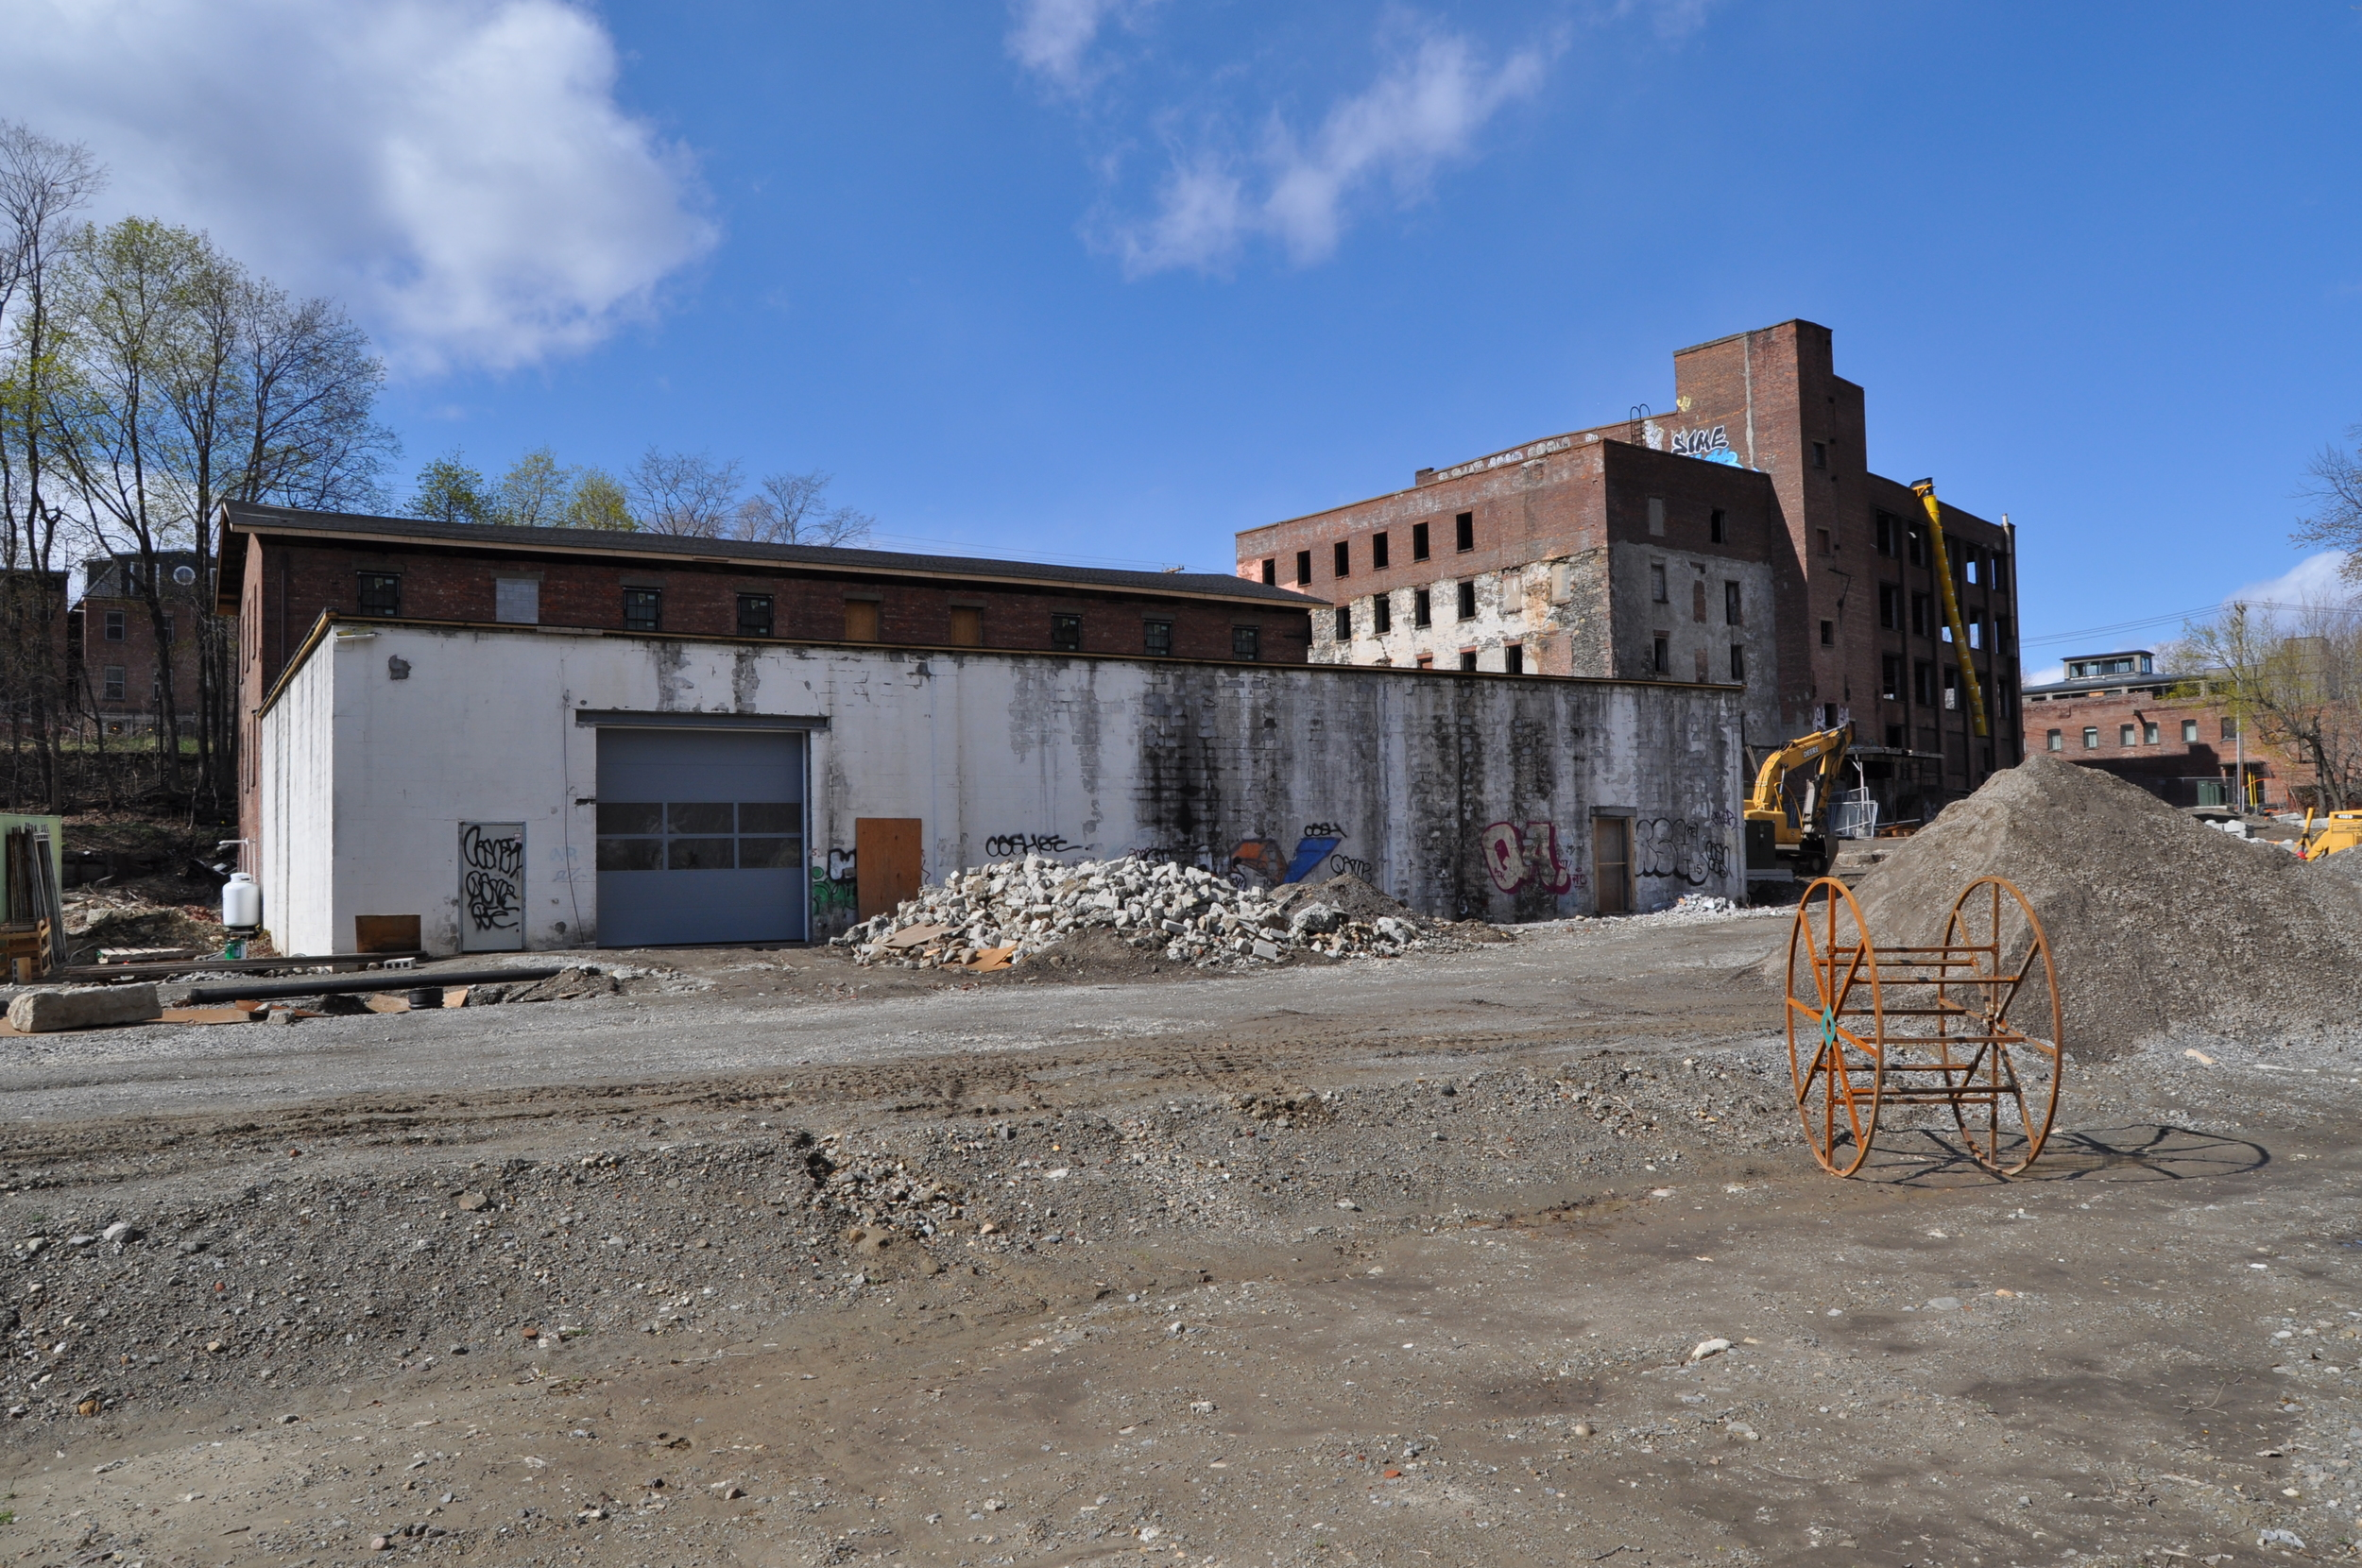 View of the brewery production space from the Fishkill Creek